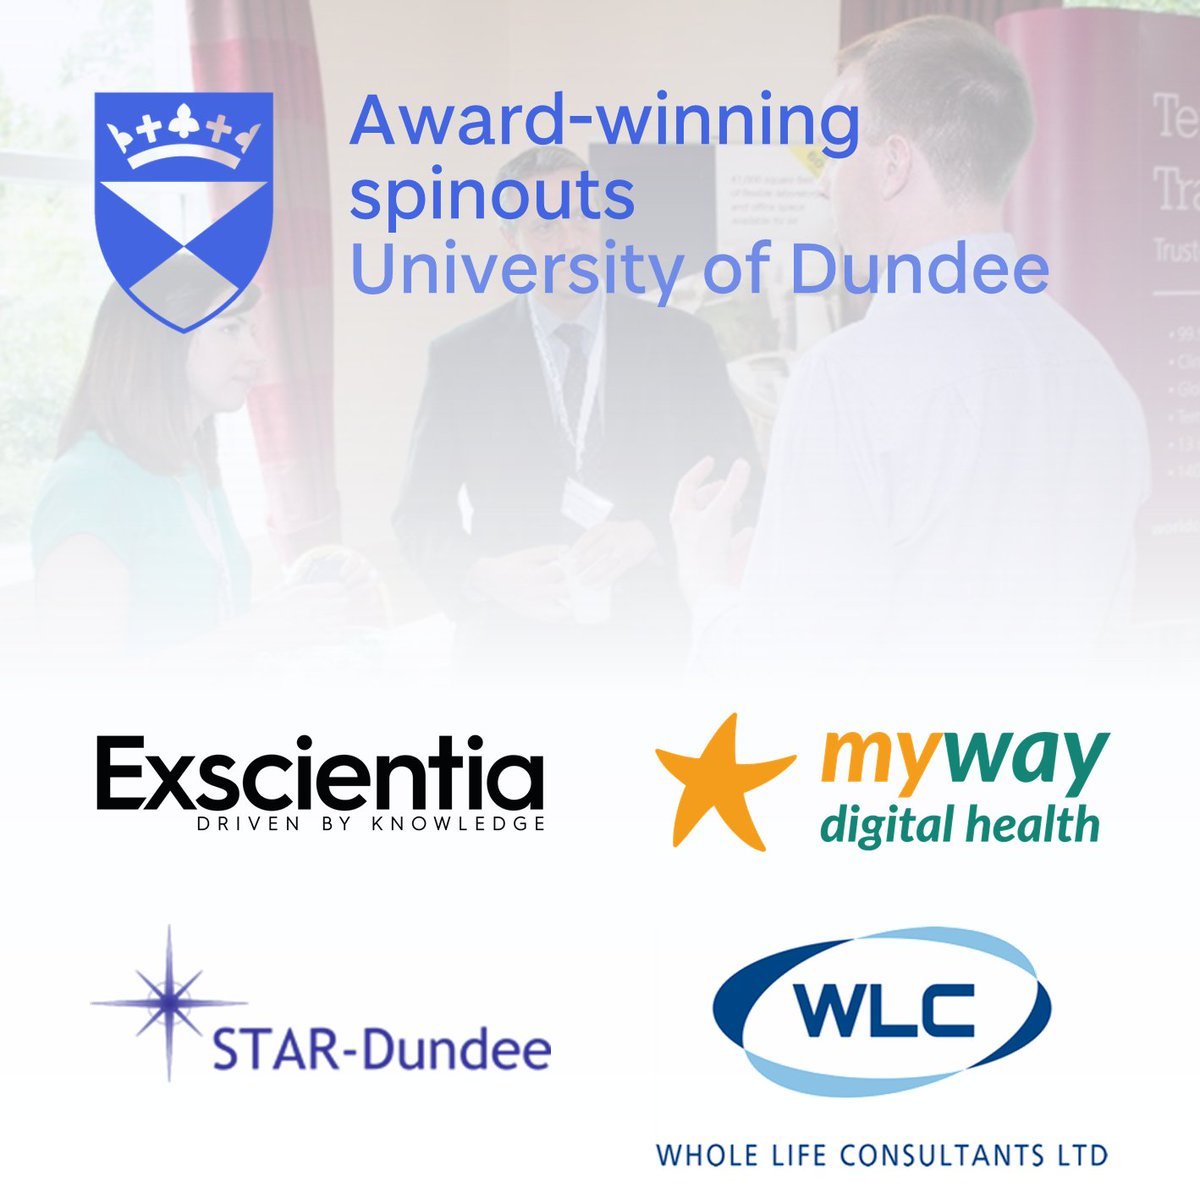 1 month to #CourierBizAwards  Which of our #spinouts will triumph?   http:// uod.ac.uk/2wTt0hx  &nbsp;   @exscientialtd @mywaydigital @WLC_UK<br>http://pic.twitter.com/JdtLT5IkcI